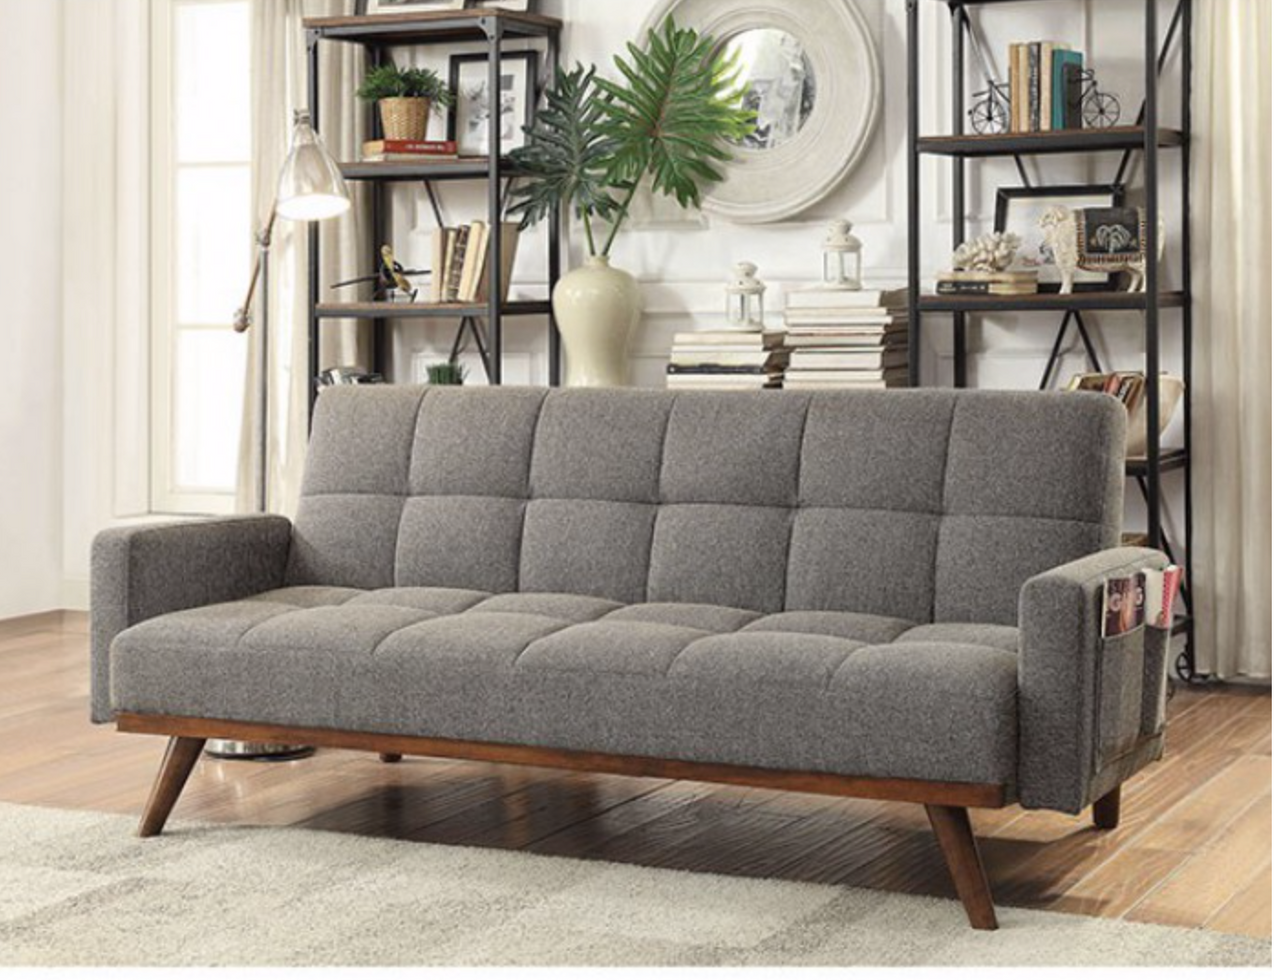 The Nettie Mid Century Modern Futon Sofa Available At Furniture Express Hi Serving Honolulu Hi And Surrounding Areas